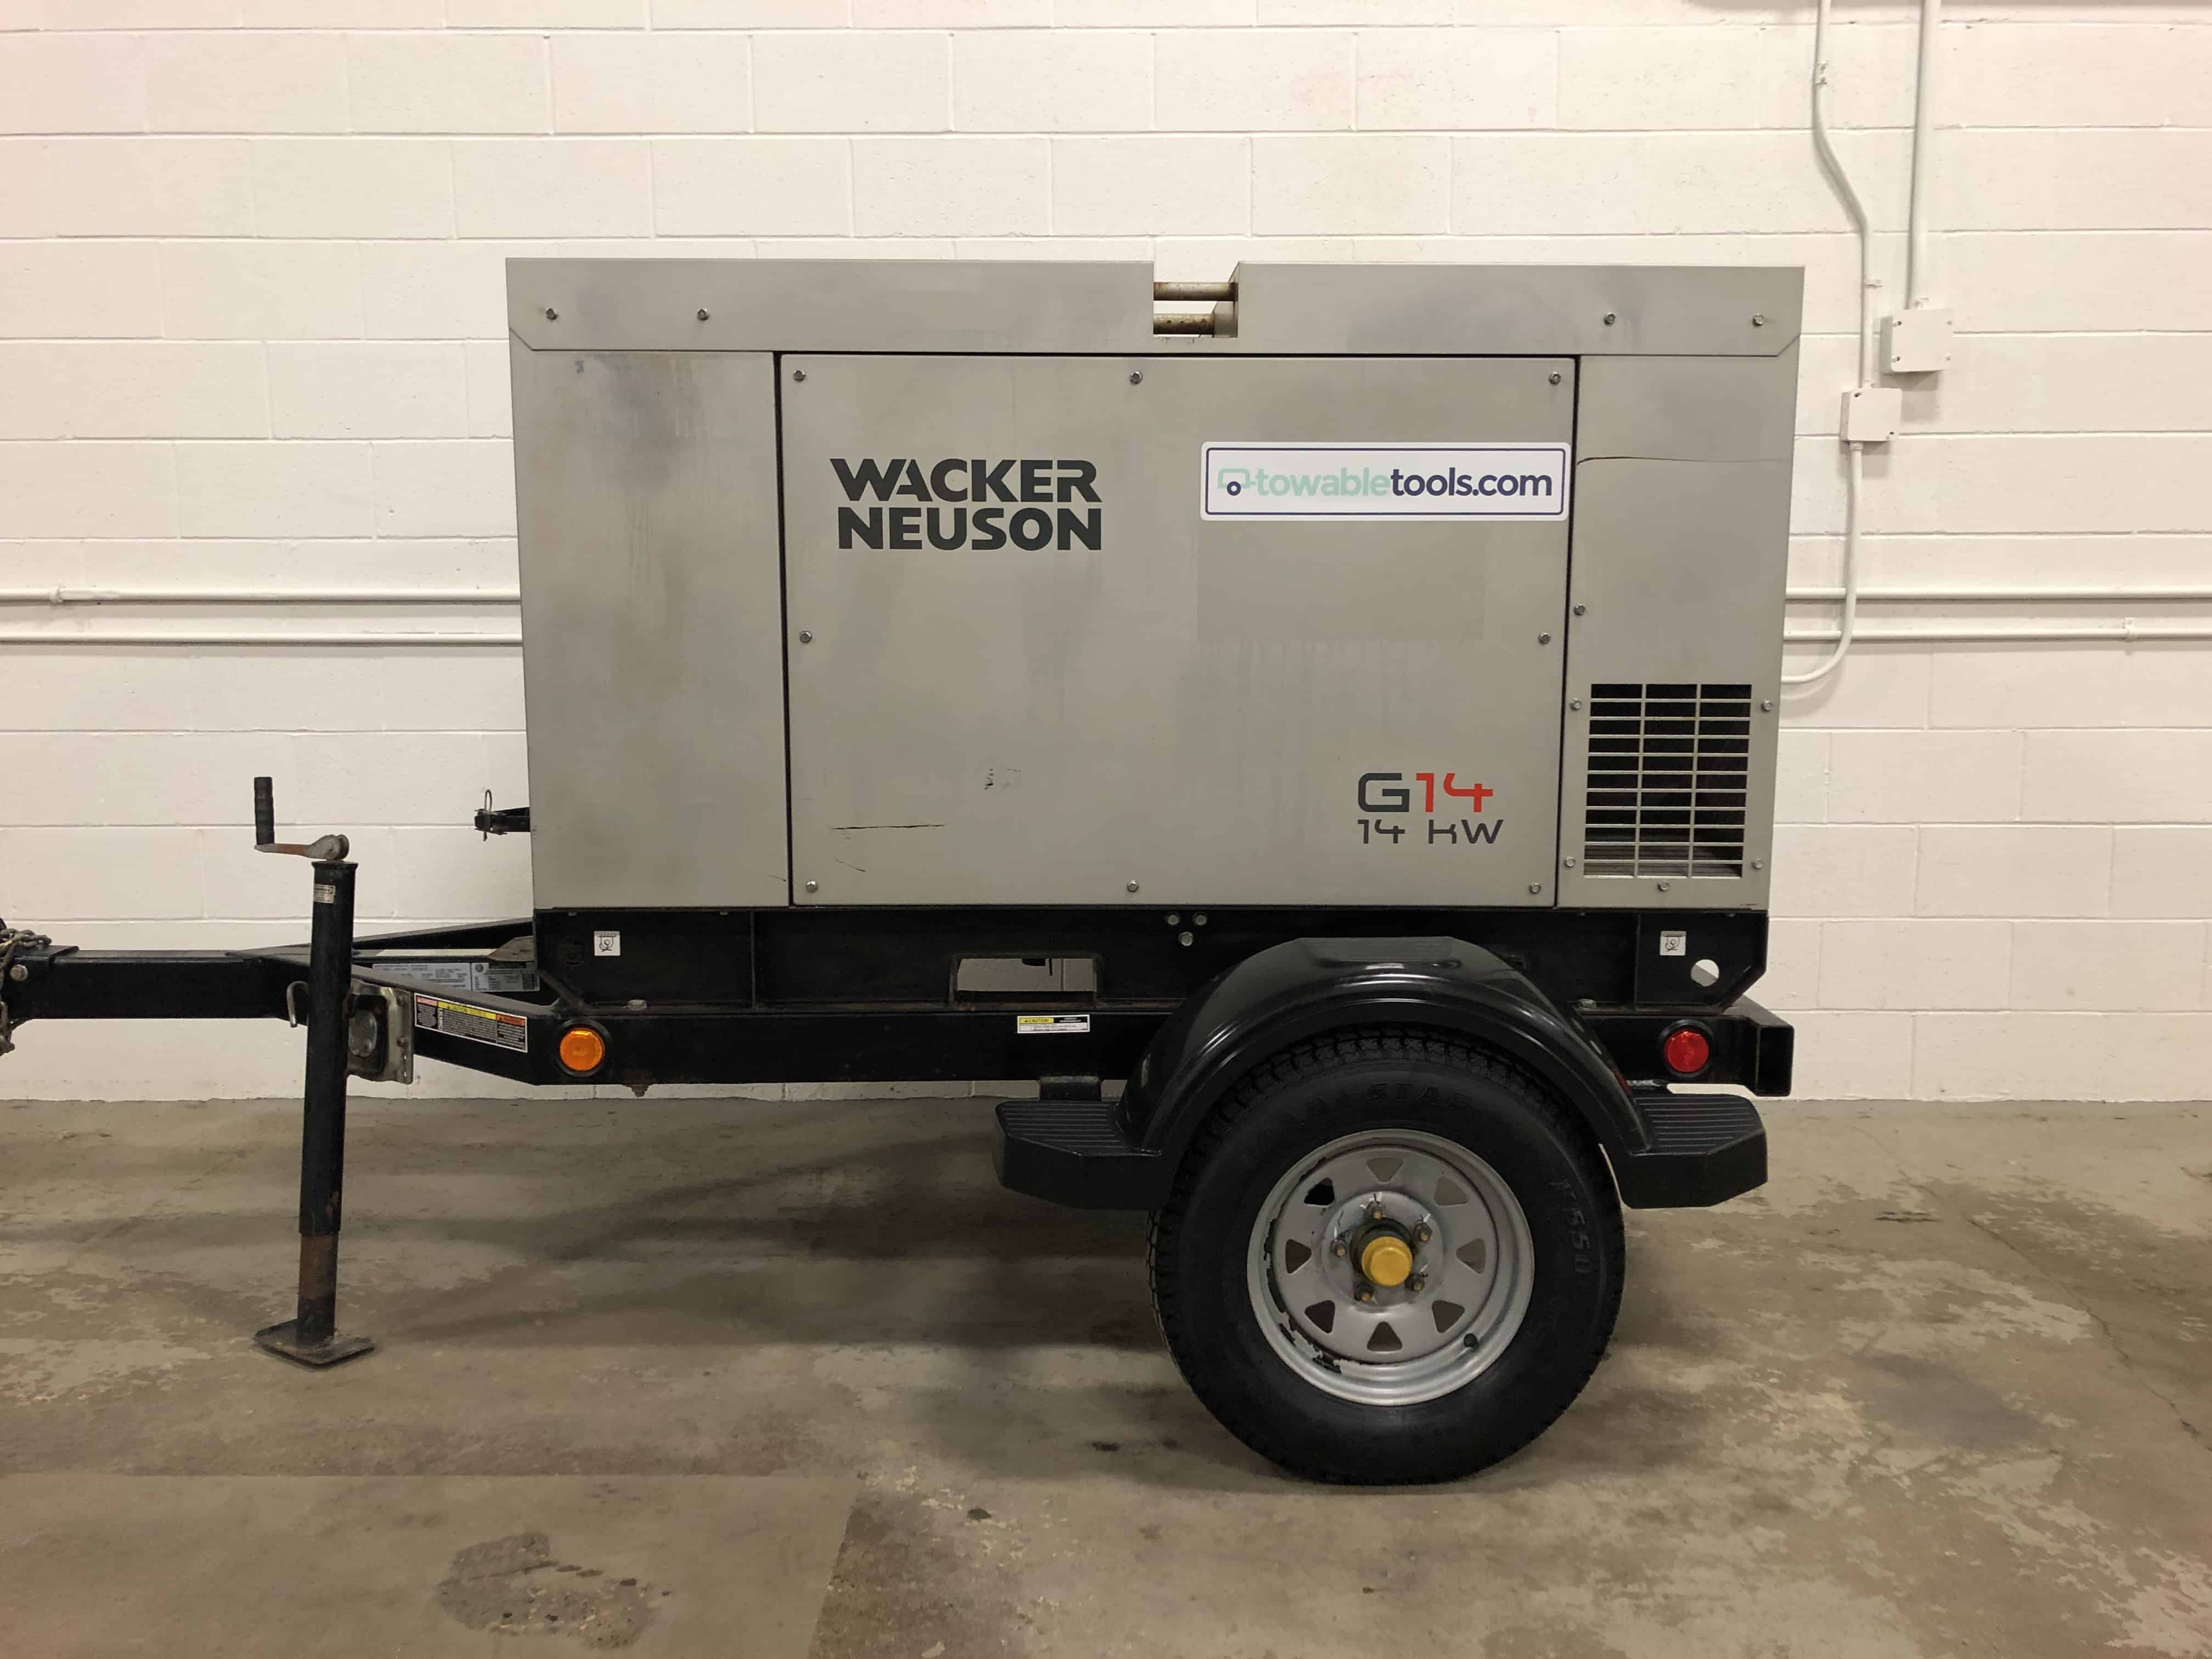 Used Wacker Neuson G14 Diesel Generator For Sale - Towable Tools